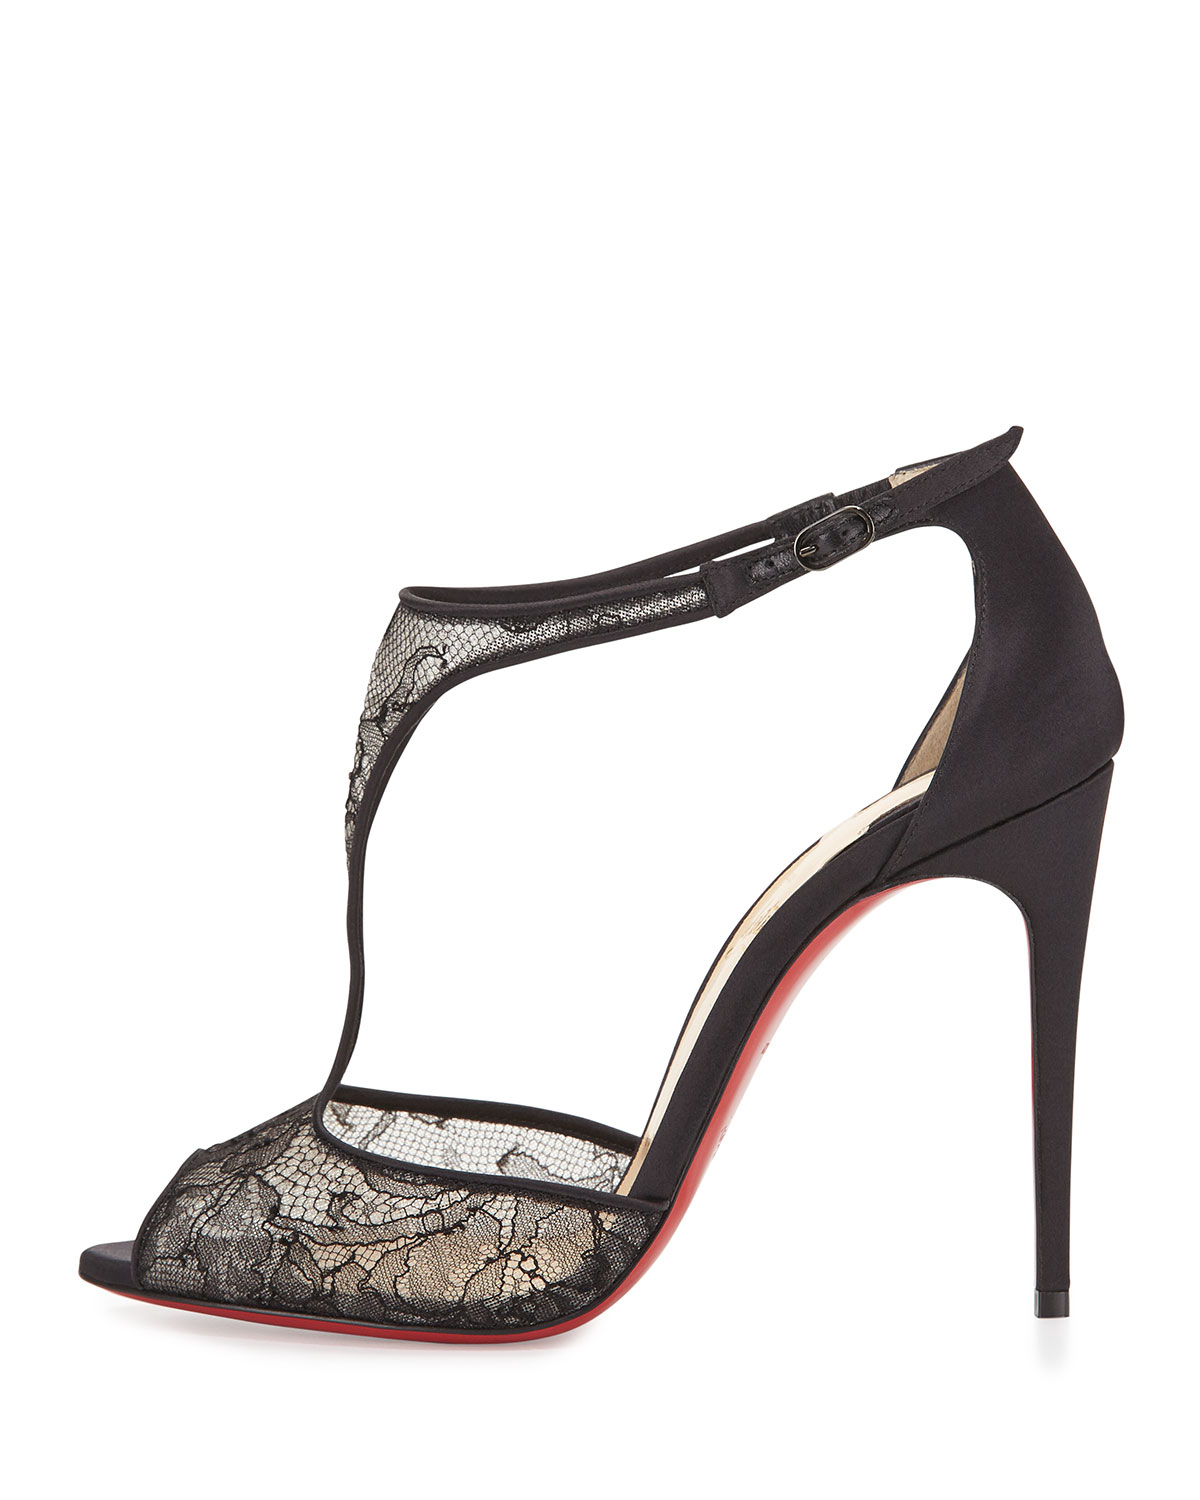 e396312a49b7 ... greece lyst christian louboutin tiny lace red sole t strap sandal in  black 39cc4 28ec1